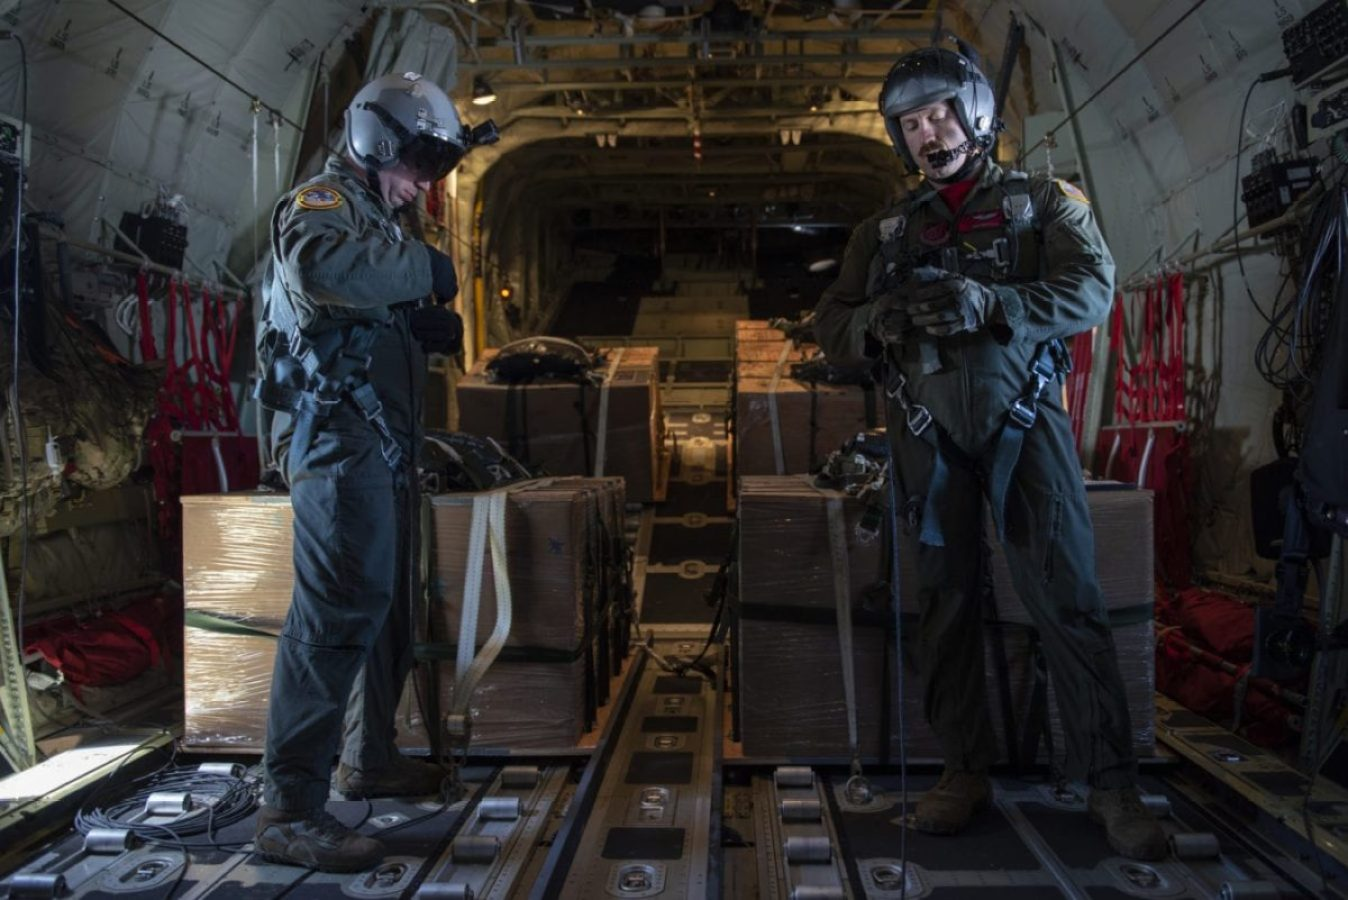 Master Sgt. Richard LaFrance 36th Airlift Squadron superintendent, left, and Tech. Sgt. Lou Splichal, 374th Operations Group executive officer, right, both out of Yokota Air Base, Japan, perform a final check of their safety equipment before executing the memorial drop for Senior Airman Jeremy Jutba-Hake during Operation Christmas Drop 2019, over Fananu, Federal States of Micronesia, Dec, 13, 2019. (U.S Air Force photo by Senior Airman Matthew Gilmore)